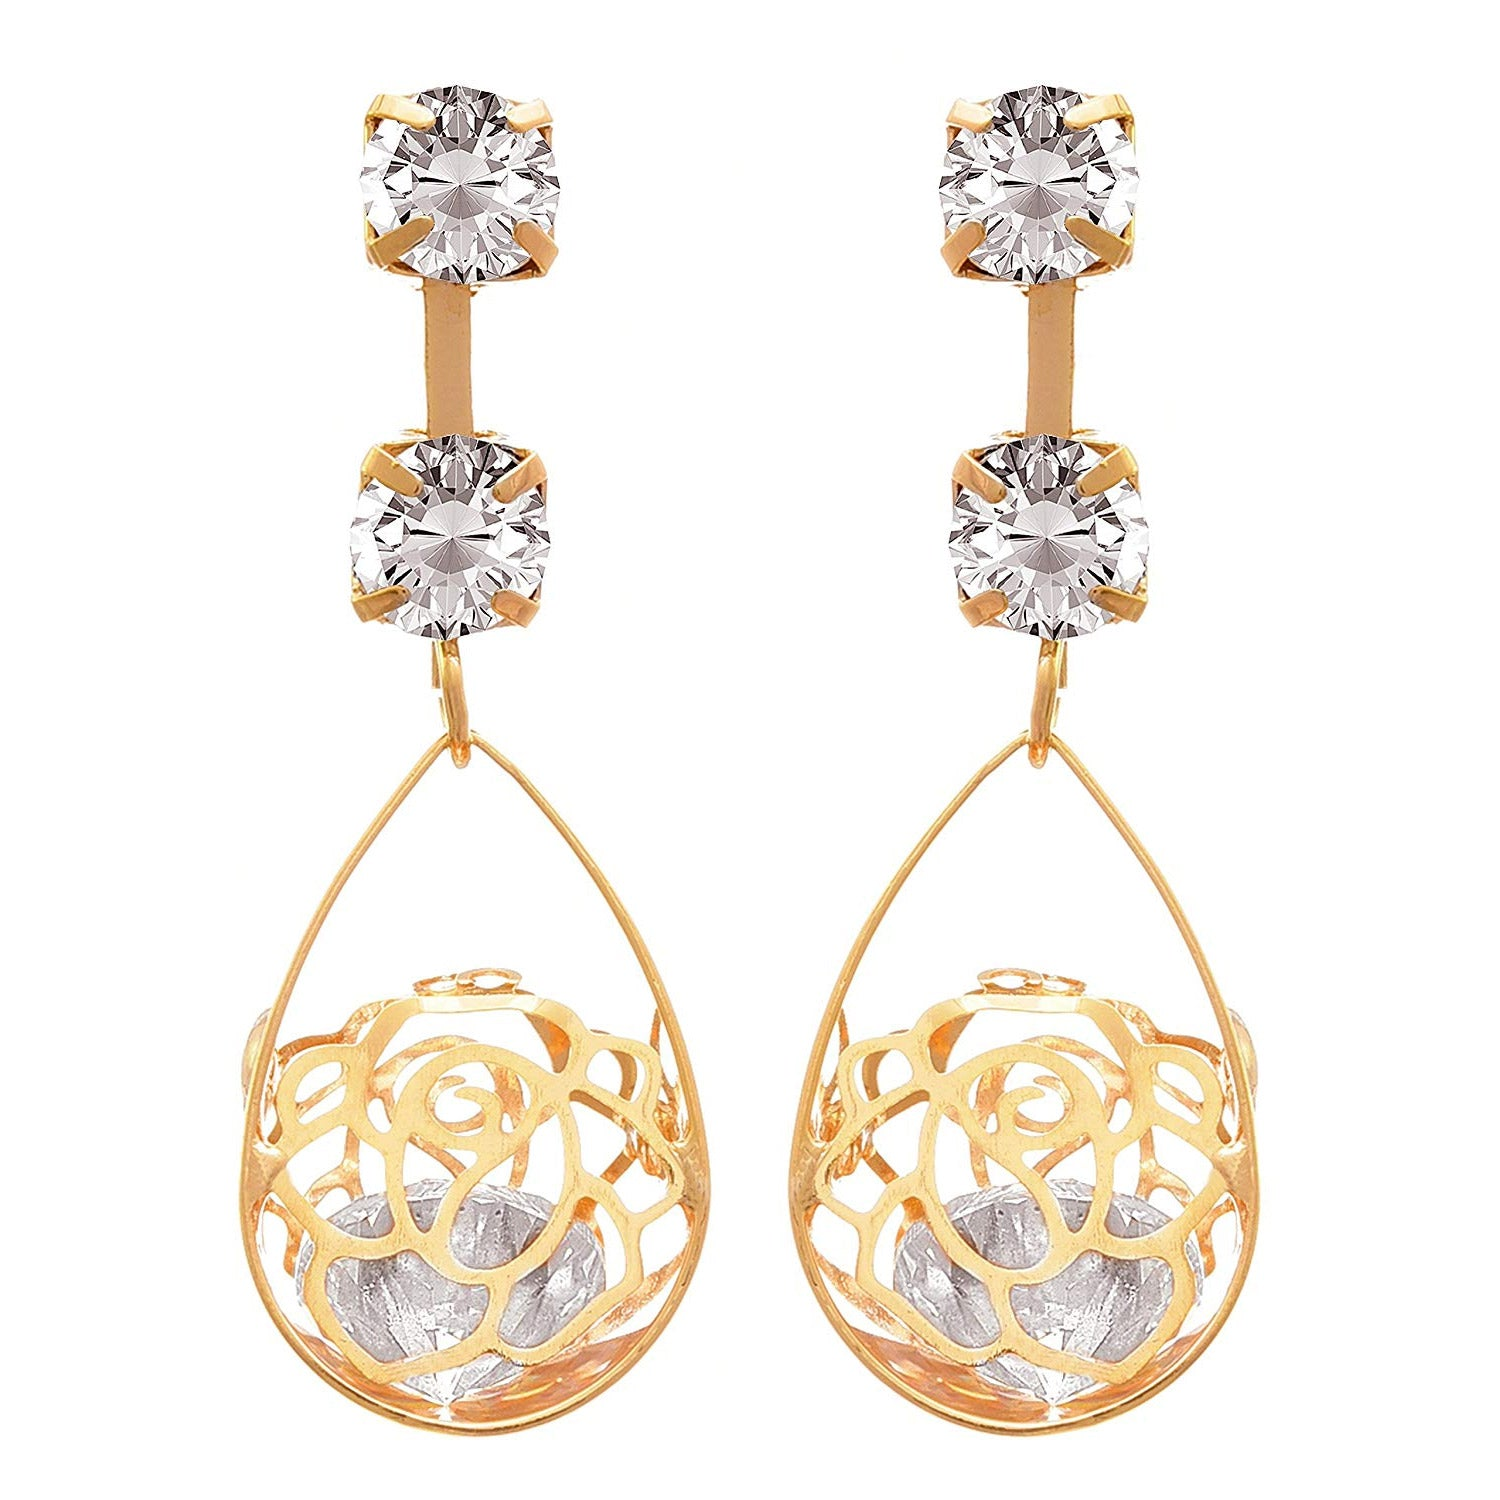 JFL - Traditional Ethnic One Gram Gold Plated Cz American Diamond Designer Earring For Women & Girls.